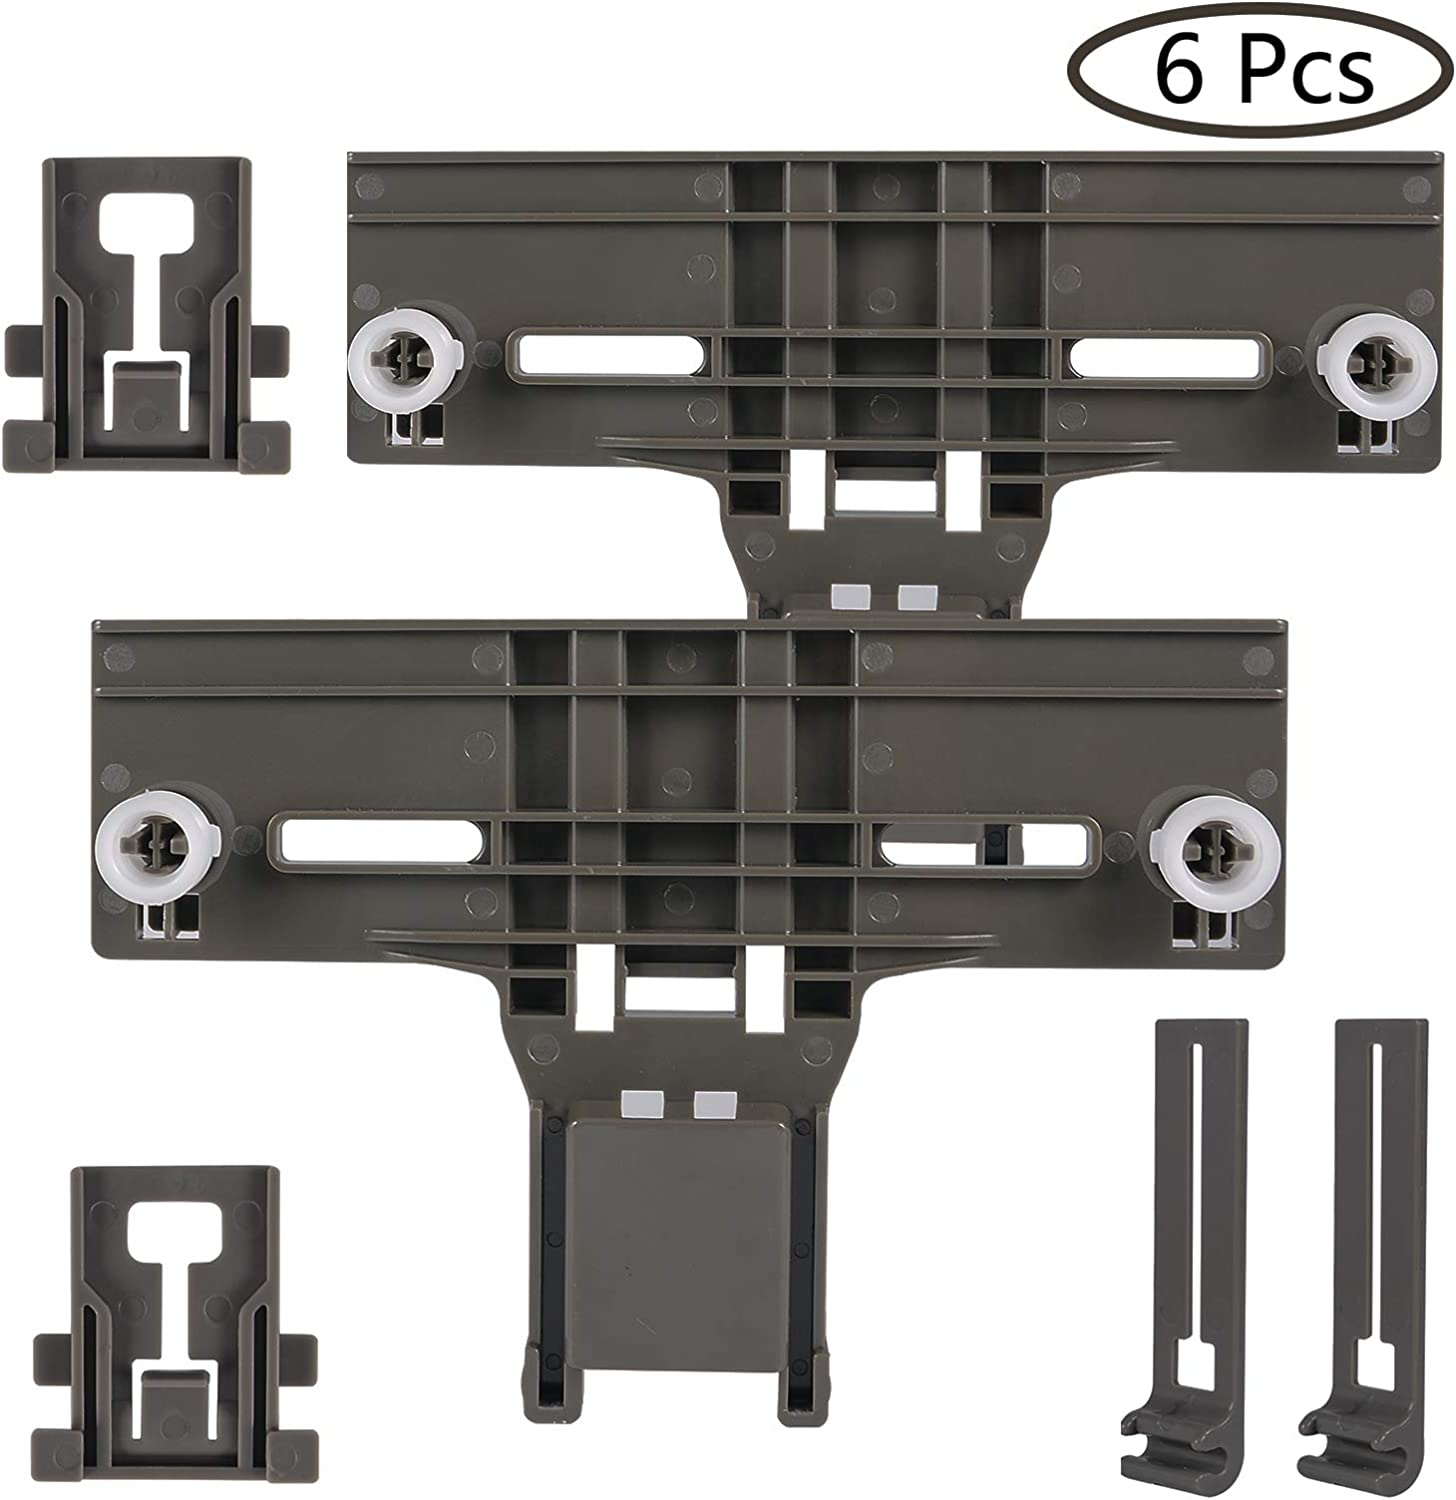 Cykemo W10350376 & W10195840 & W10195839 Dishwasher Rack Adjuster Kit Replacement for Kenmore Dishwashers(Pack of 2)